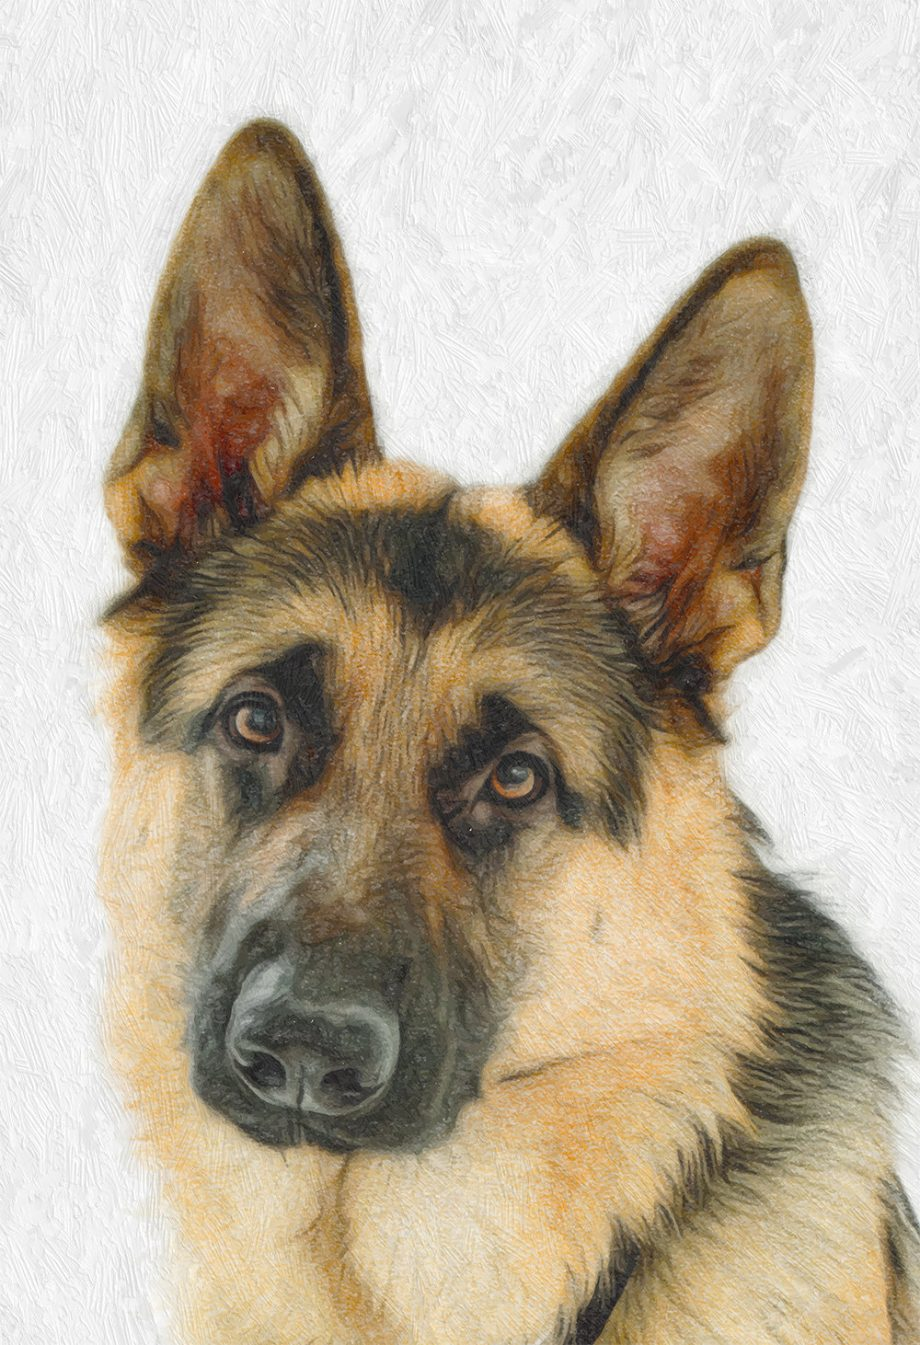 German Shepherd Dog Print illustration Art Print Poster Giclee on Cotton Canvas and Satin Photo Paper